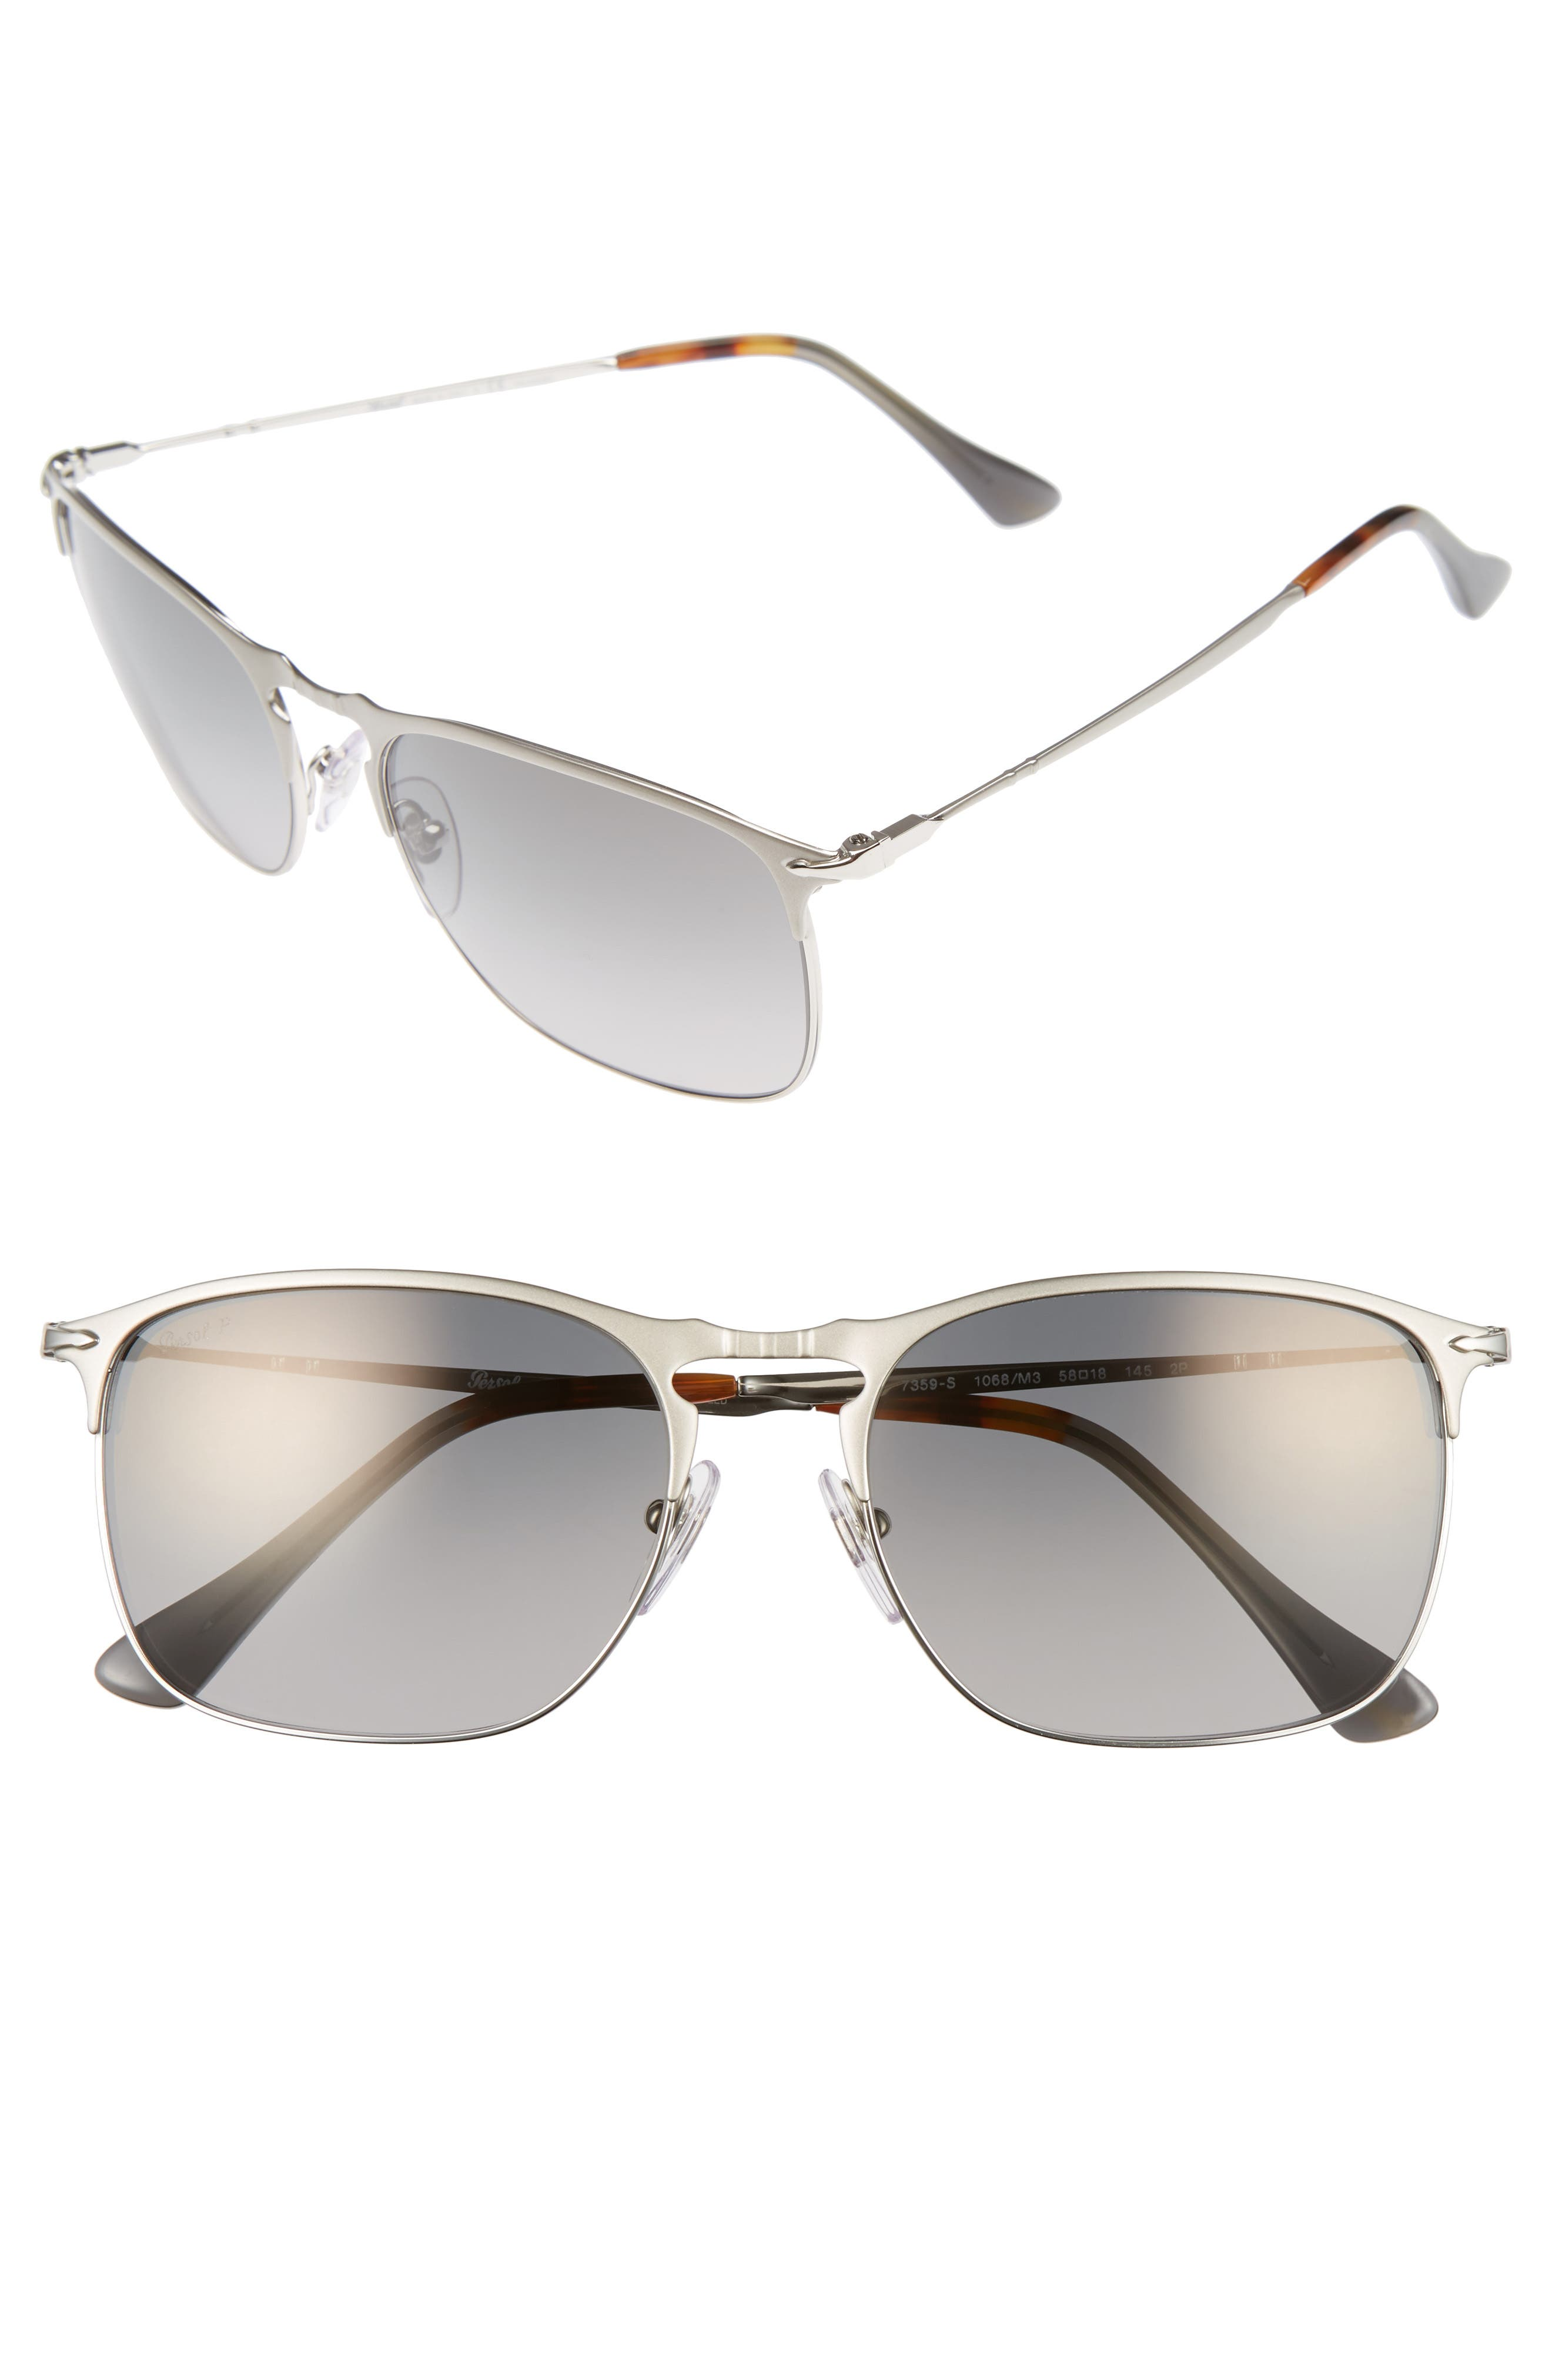 Persol Evolution 58mm Polarized Aviator Sunglasses